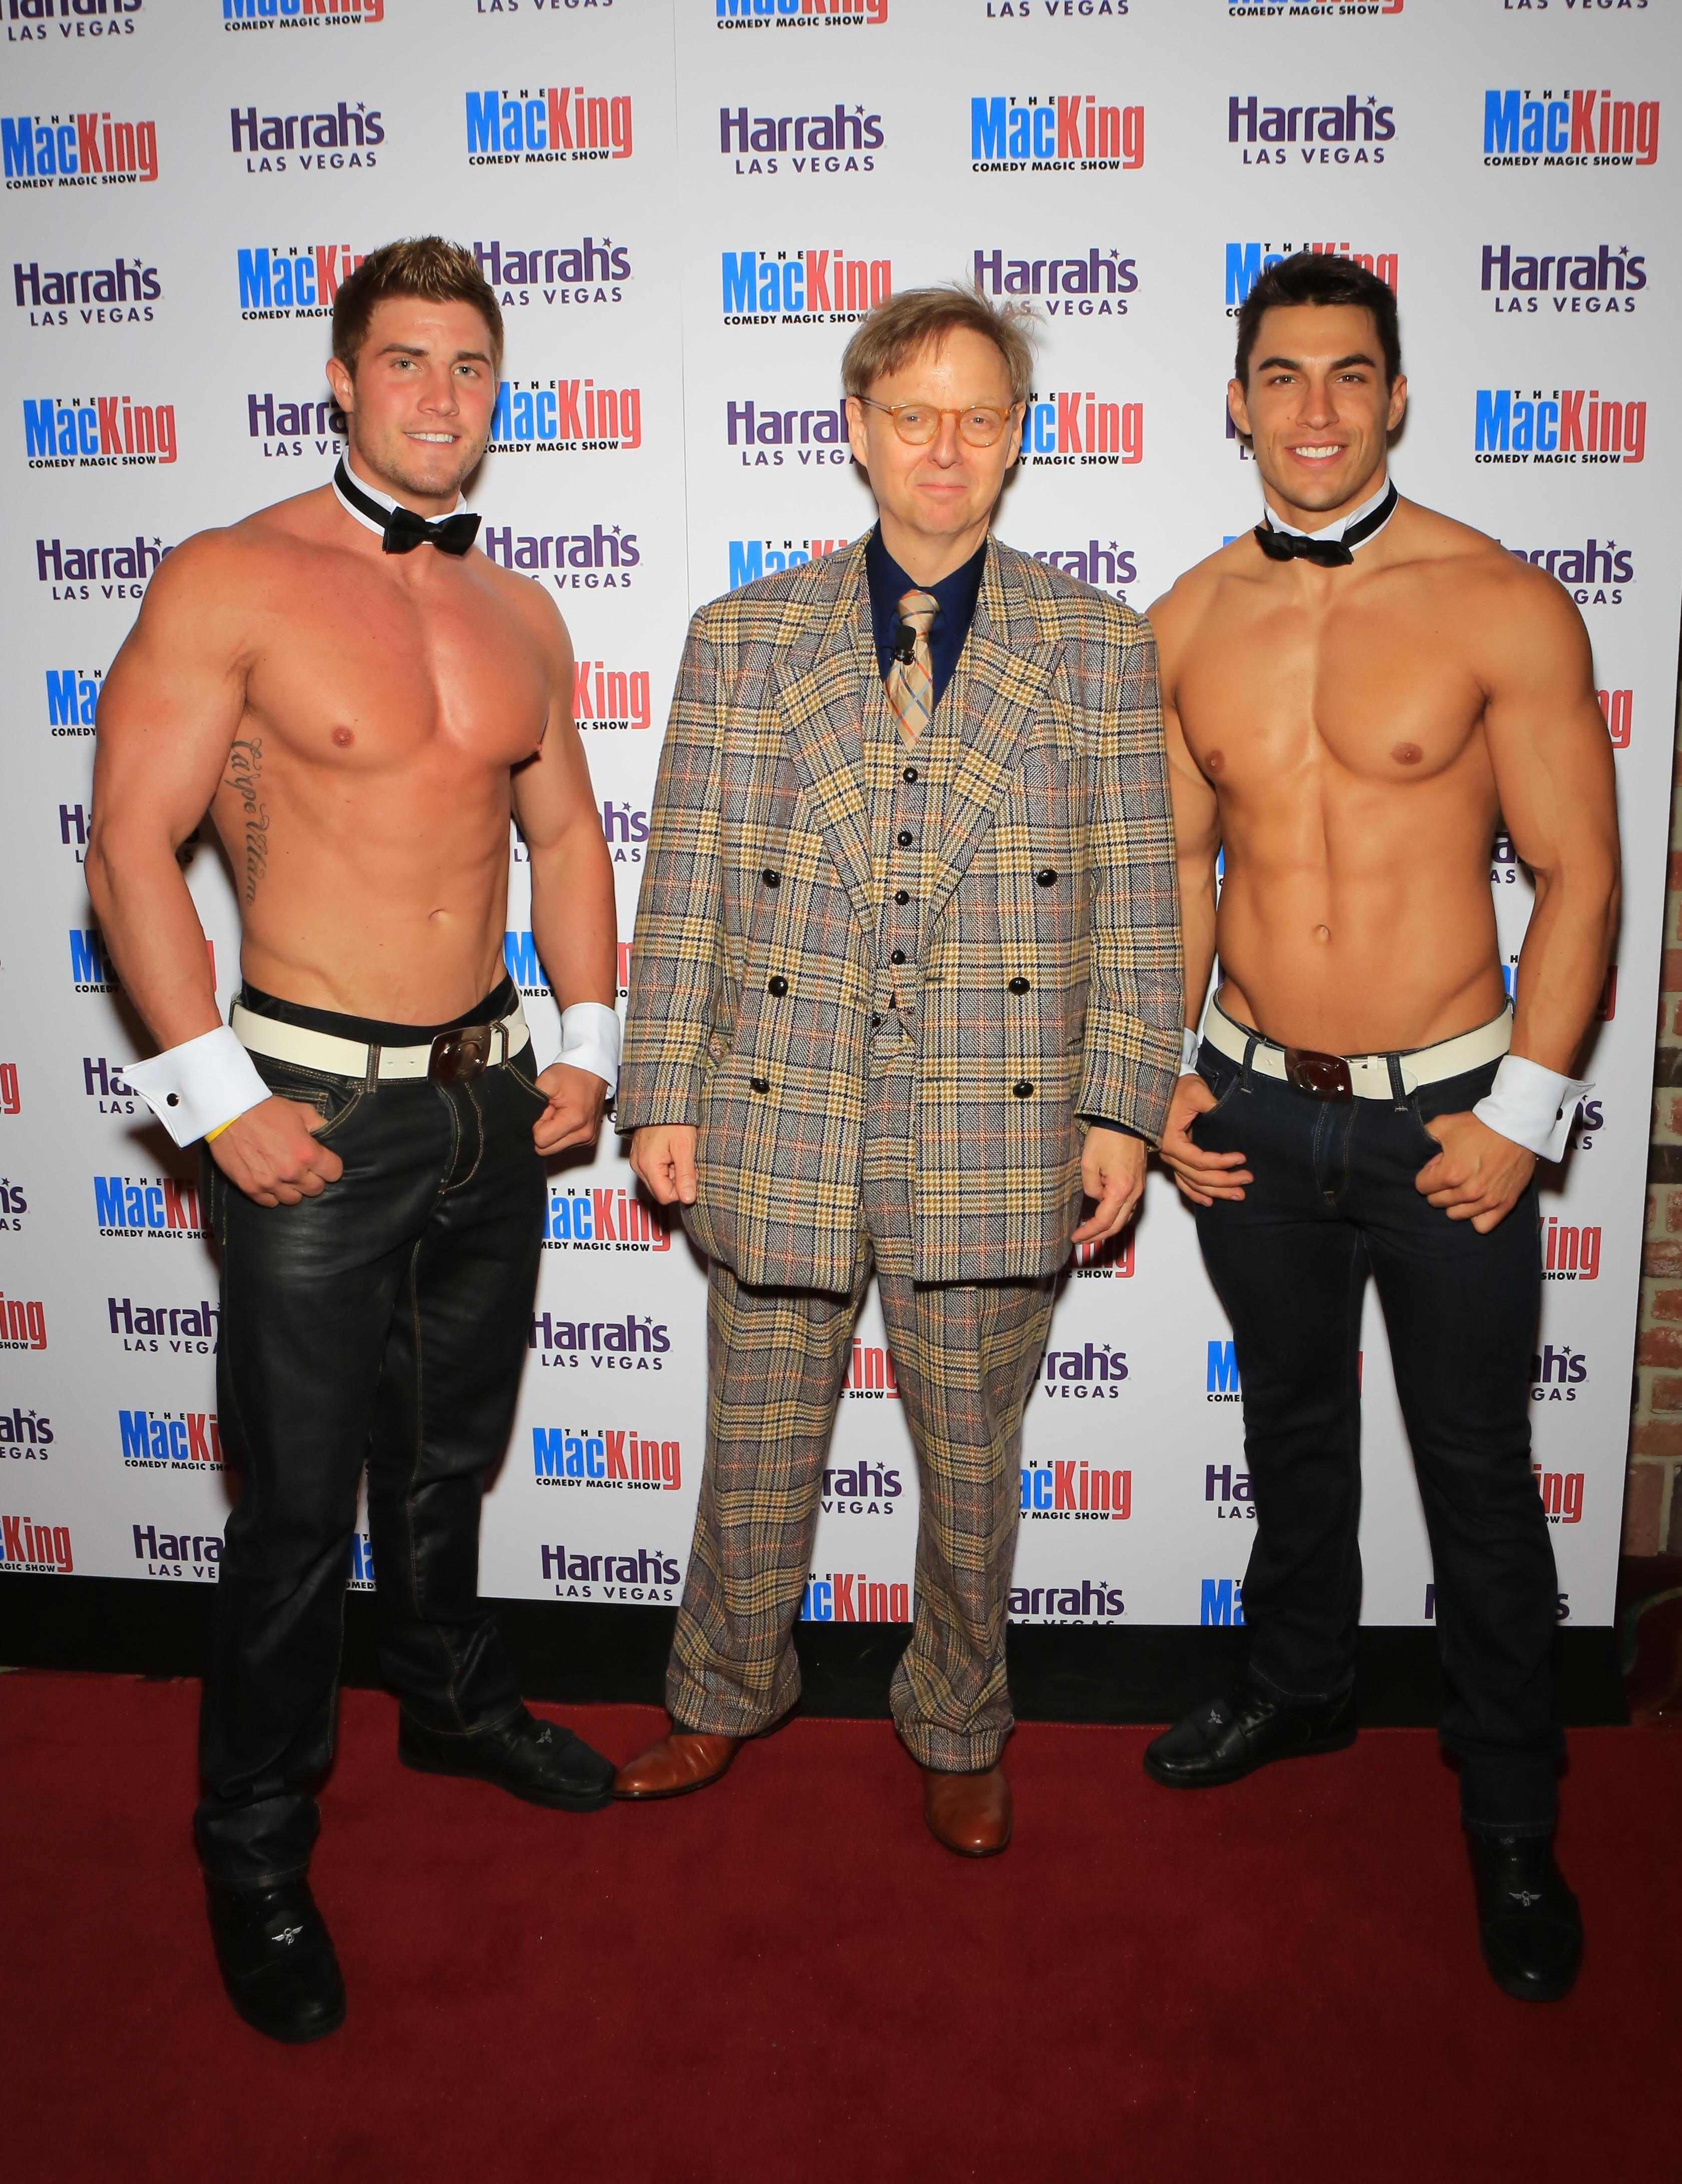 Chippendales and Mac King